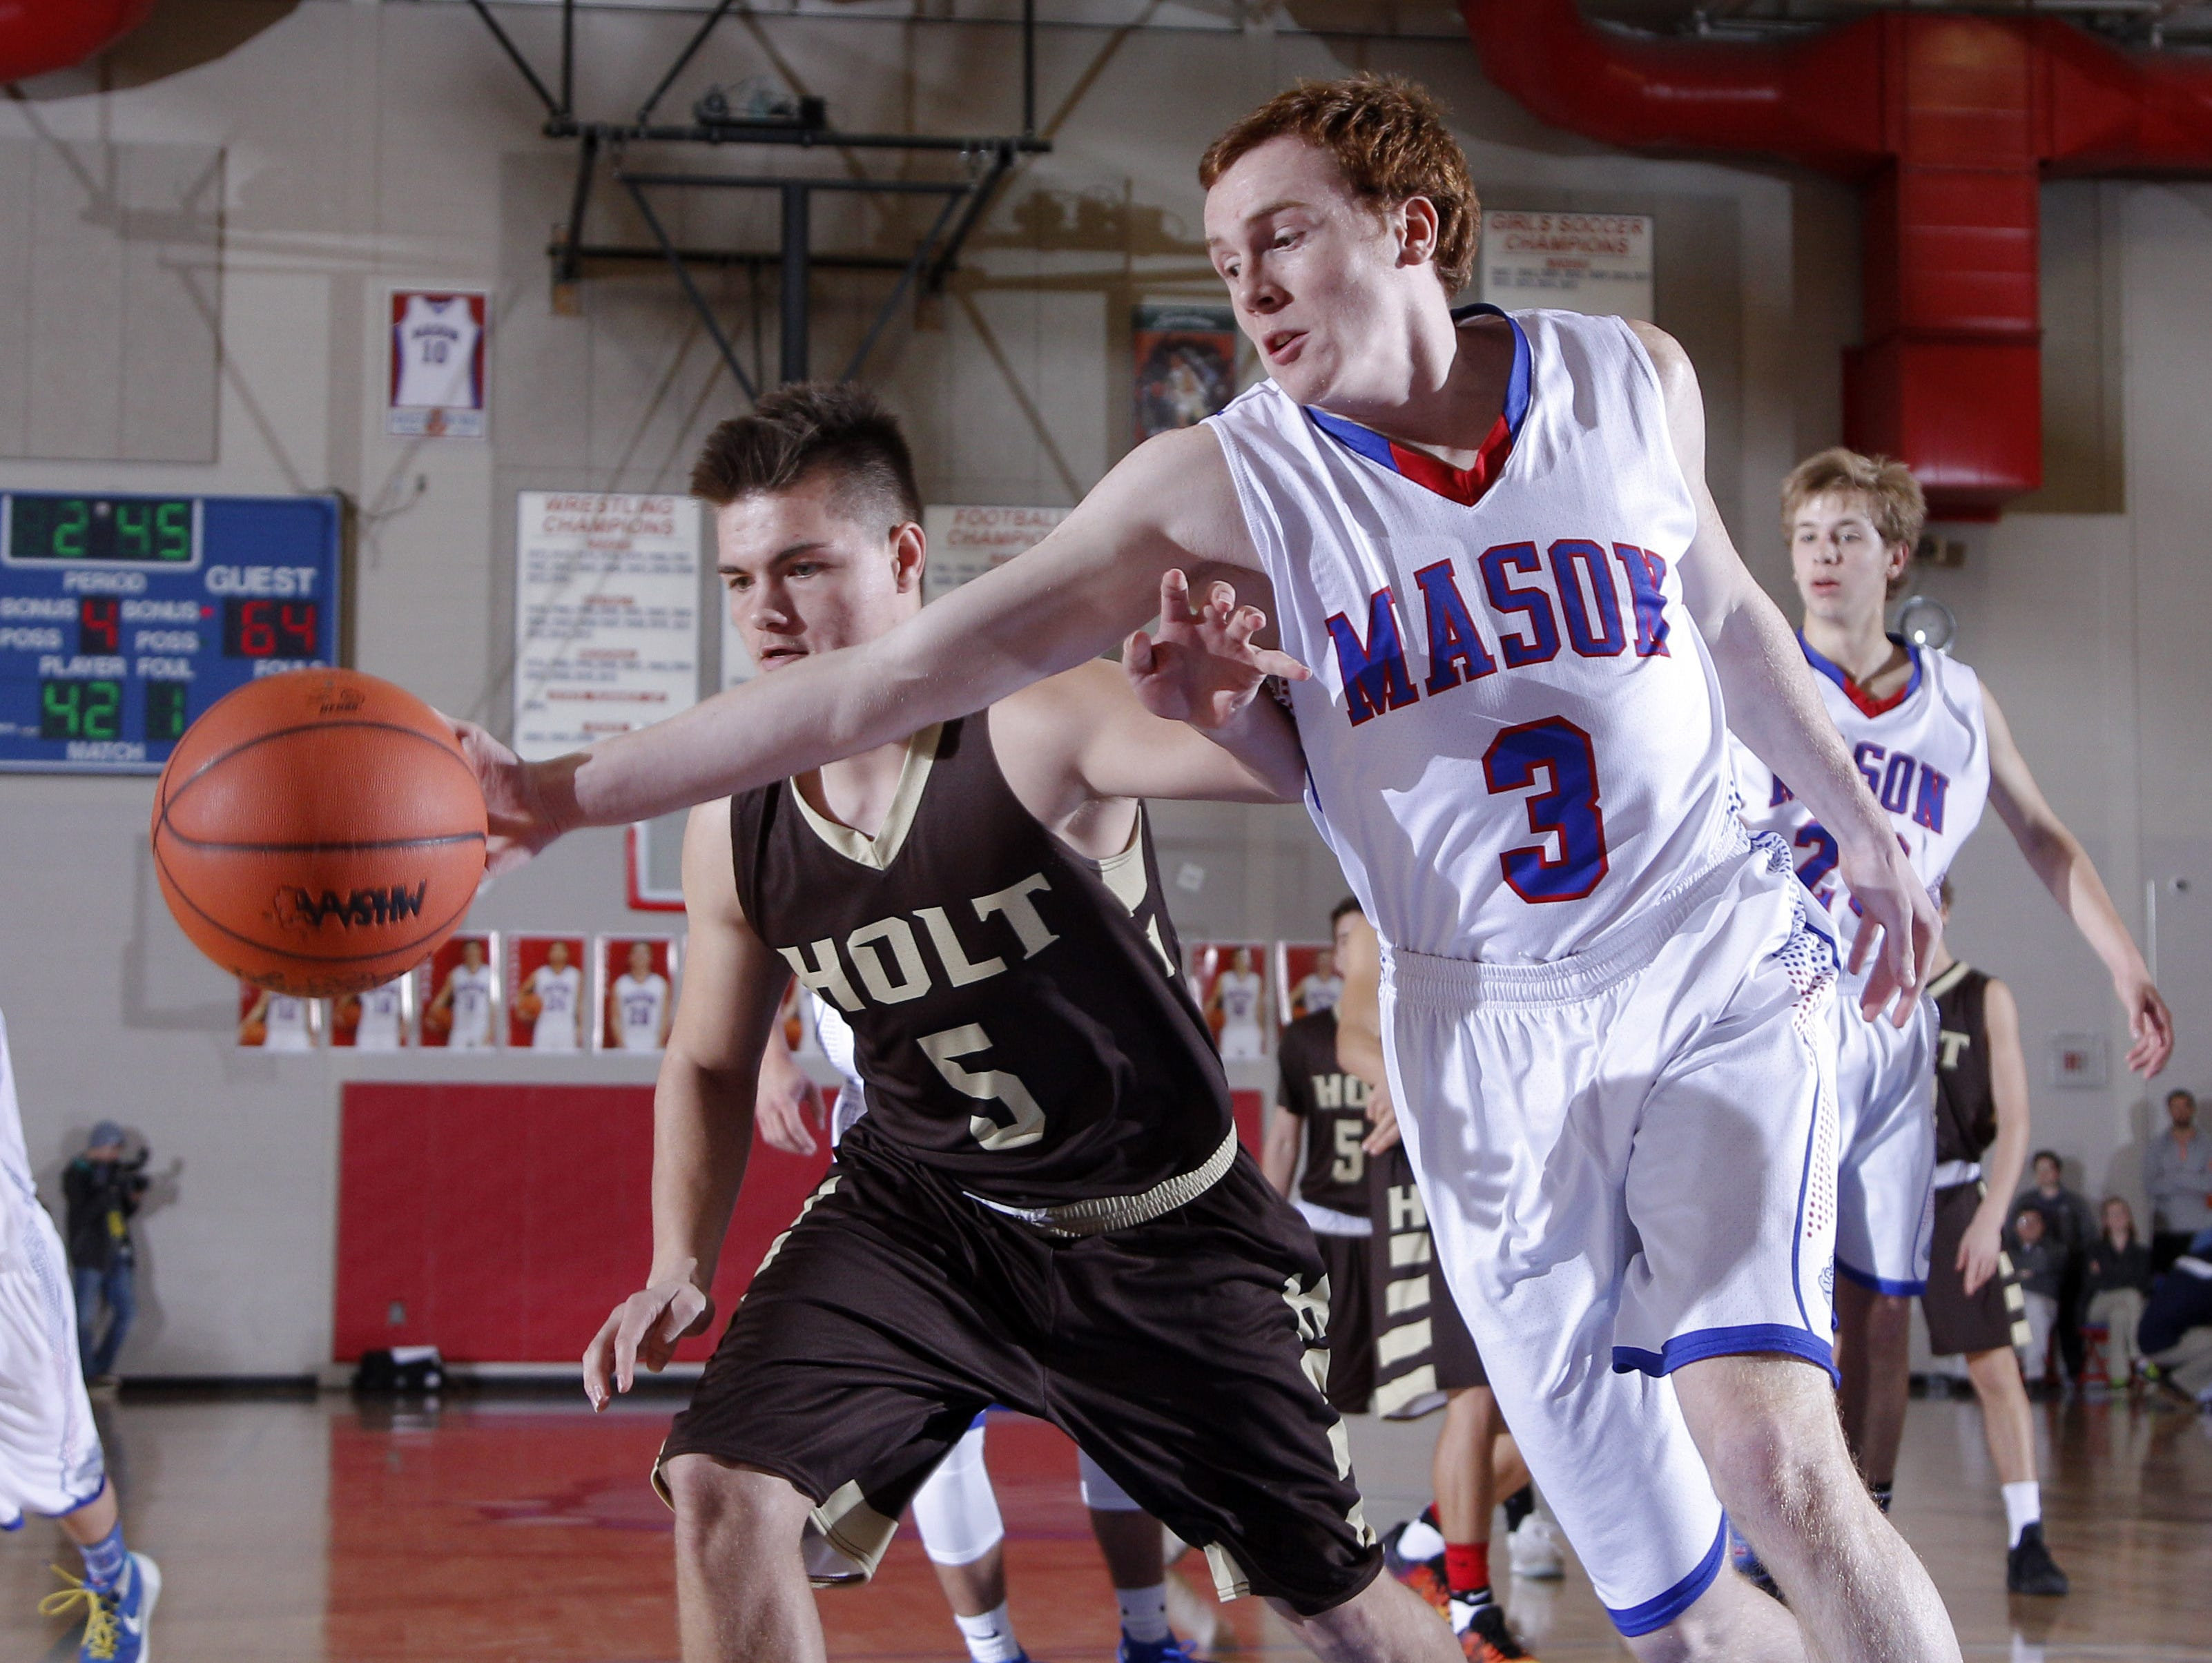 Mason's Brooks Mires (3) and Holt's Owen Brown (5) chase down the ball during their district final Friday, March 10, 2017, in Mason, Mich. Holt won 74-44.